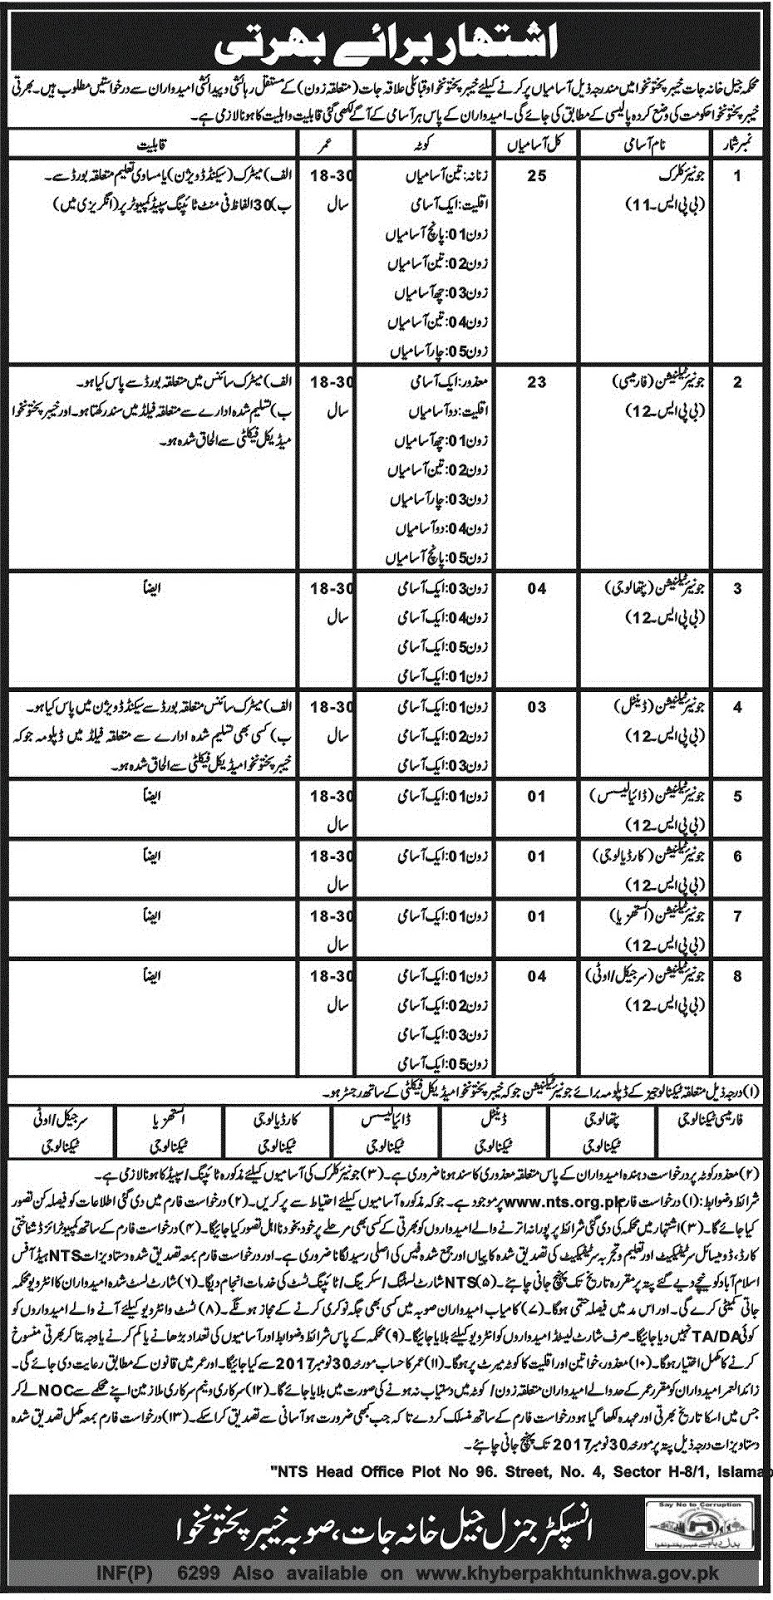 Inspectorate General of Prisons, KPK Jobs 2017,kpk jobs,jail khana jat jobs kpk, Jobs in Pakistan, Pakistan Jobs